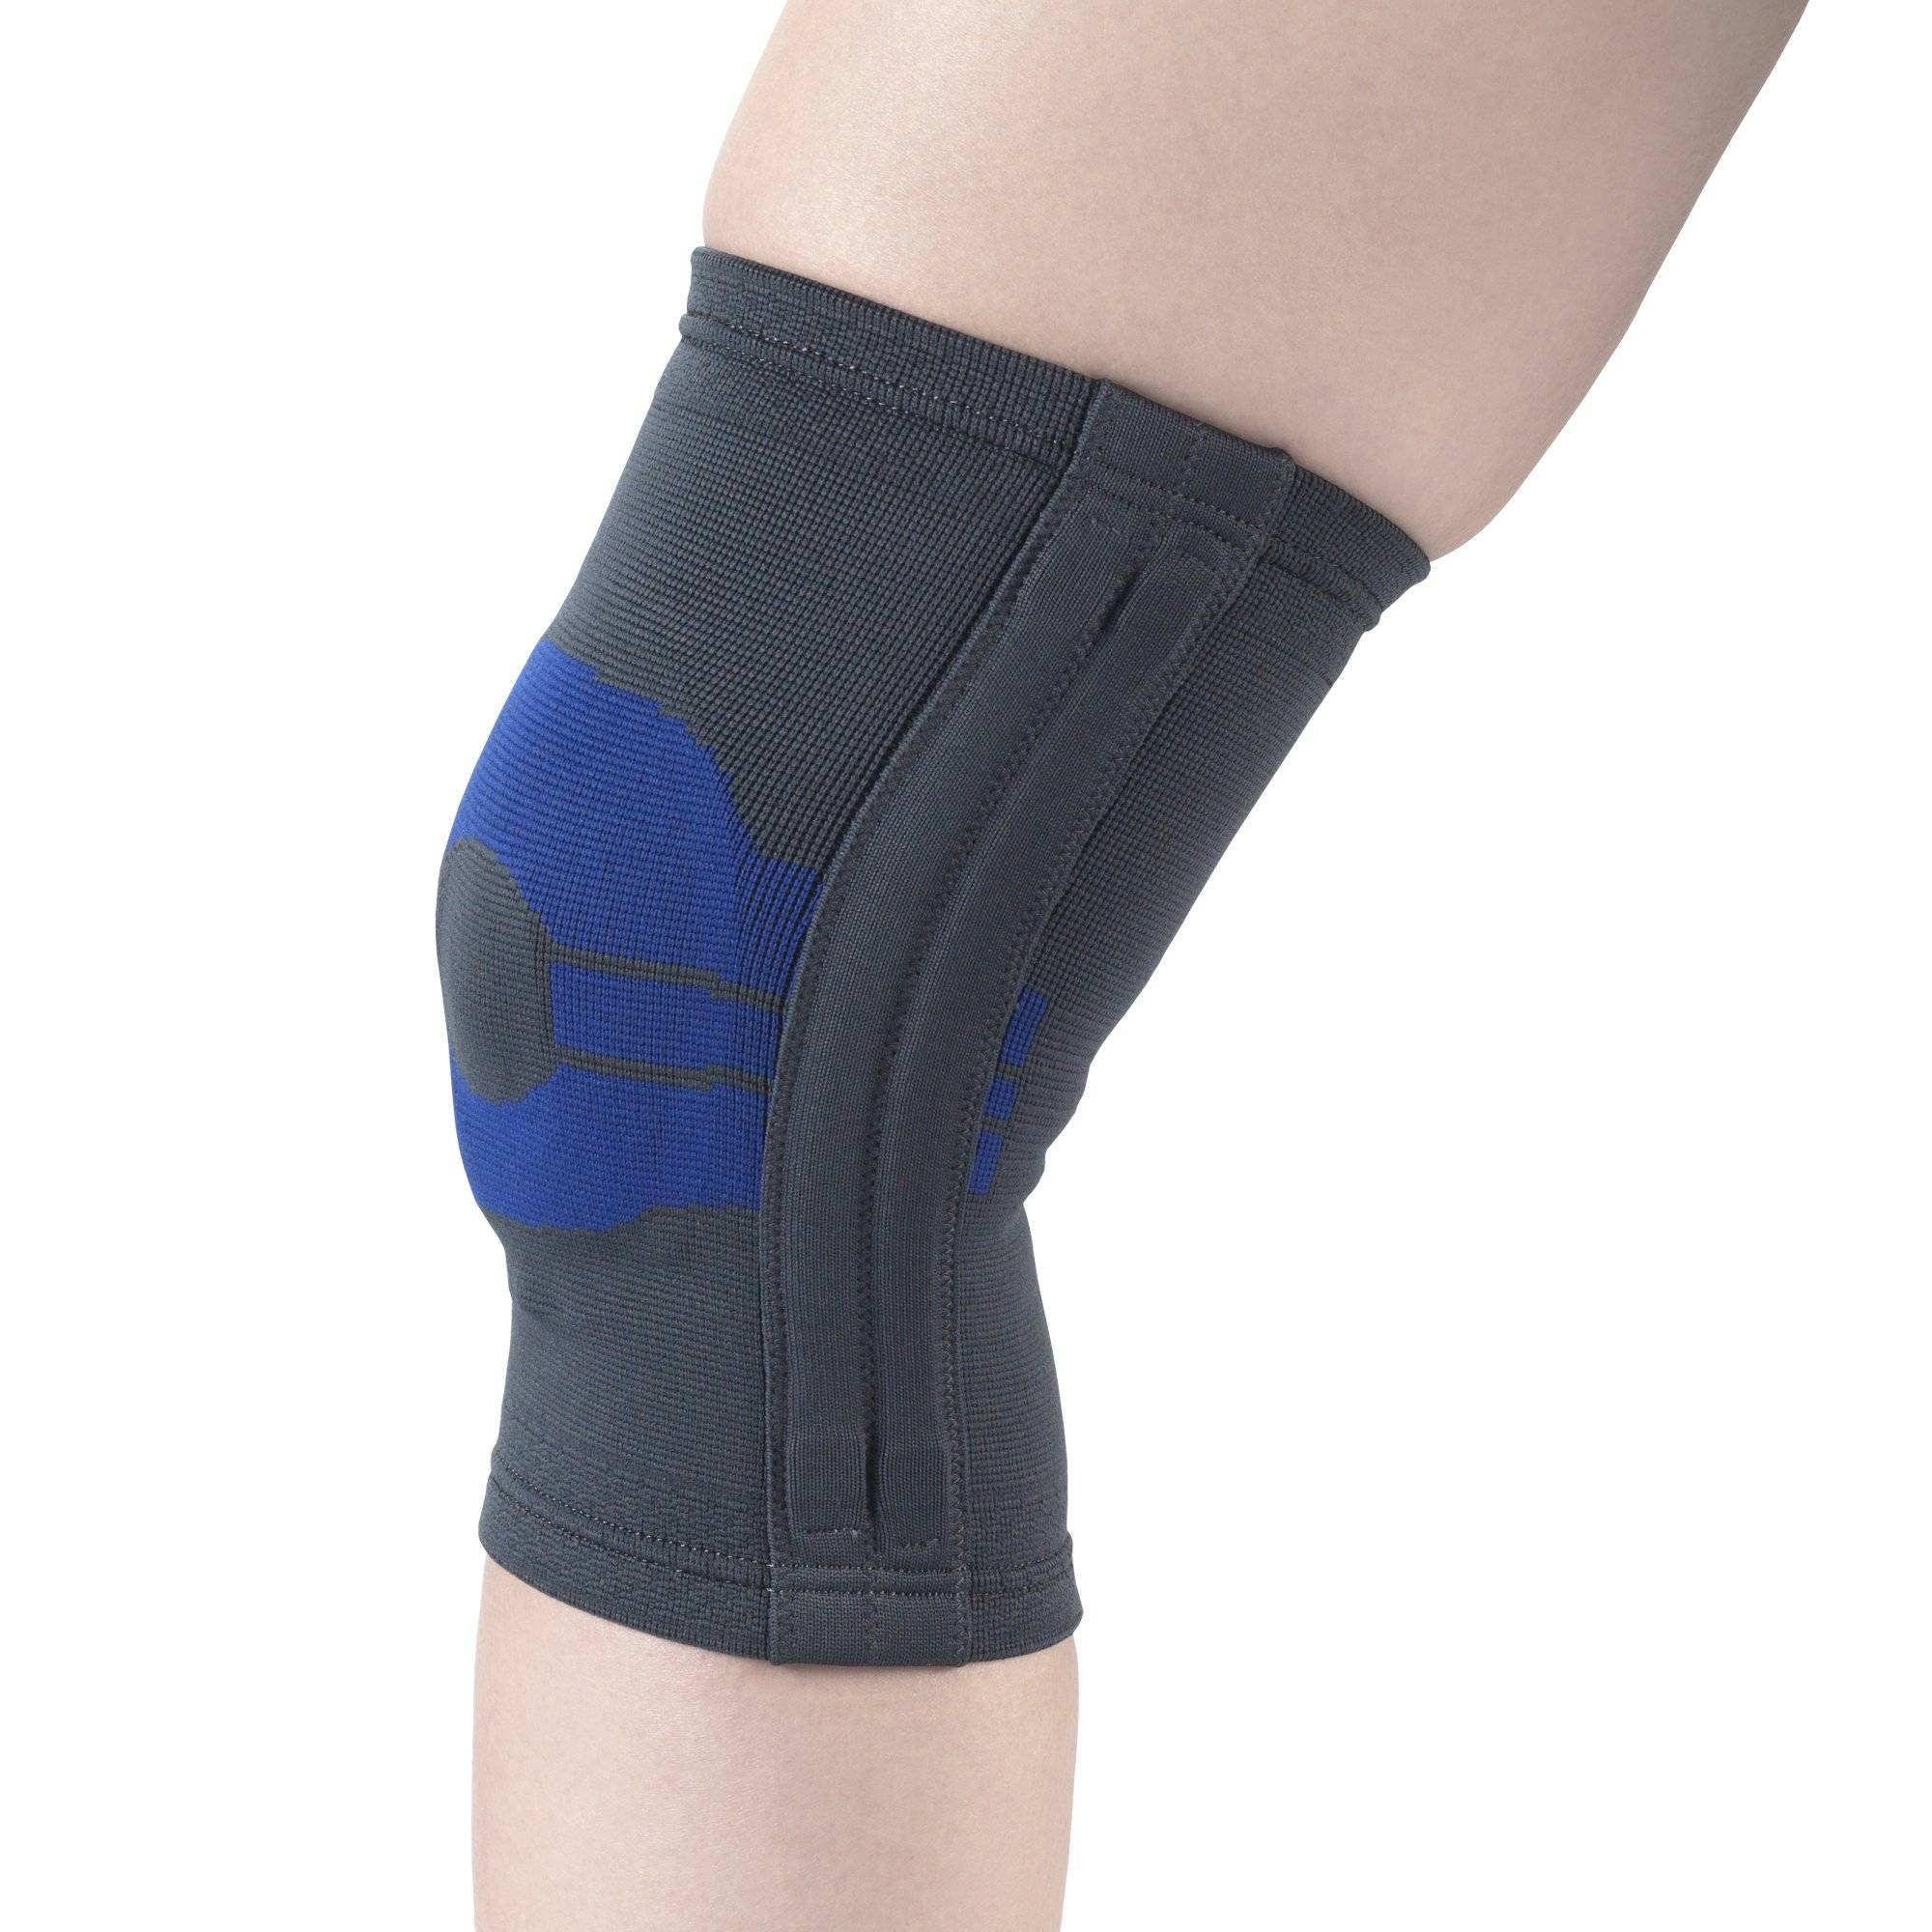 2435 / KNEE SUPPORT WITH COMPRESSION GEL INSERT & FLEXIBLE STAYS